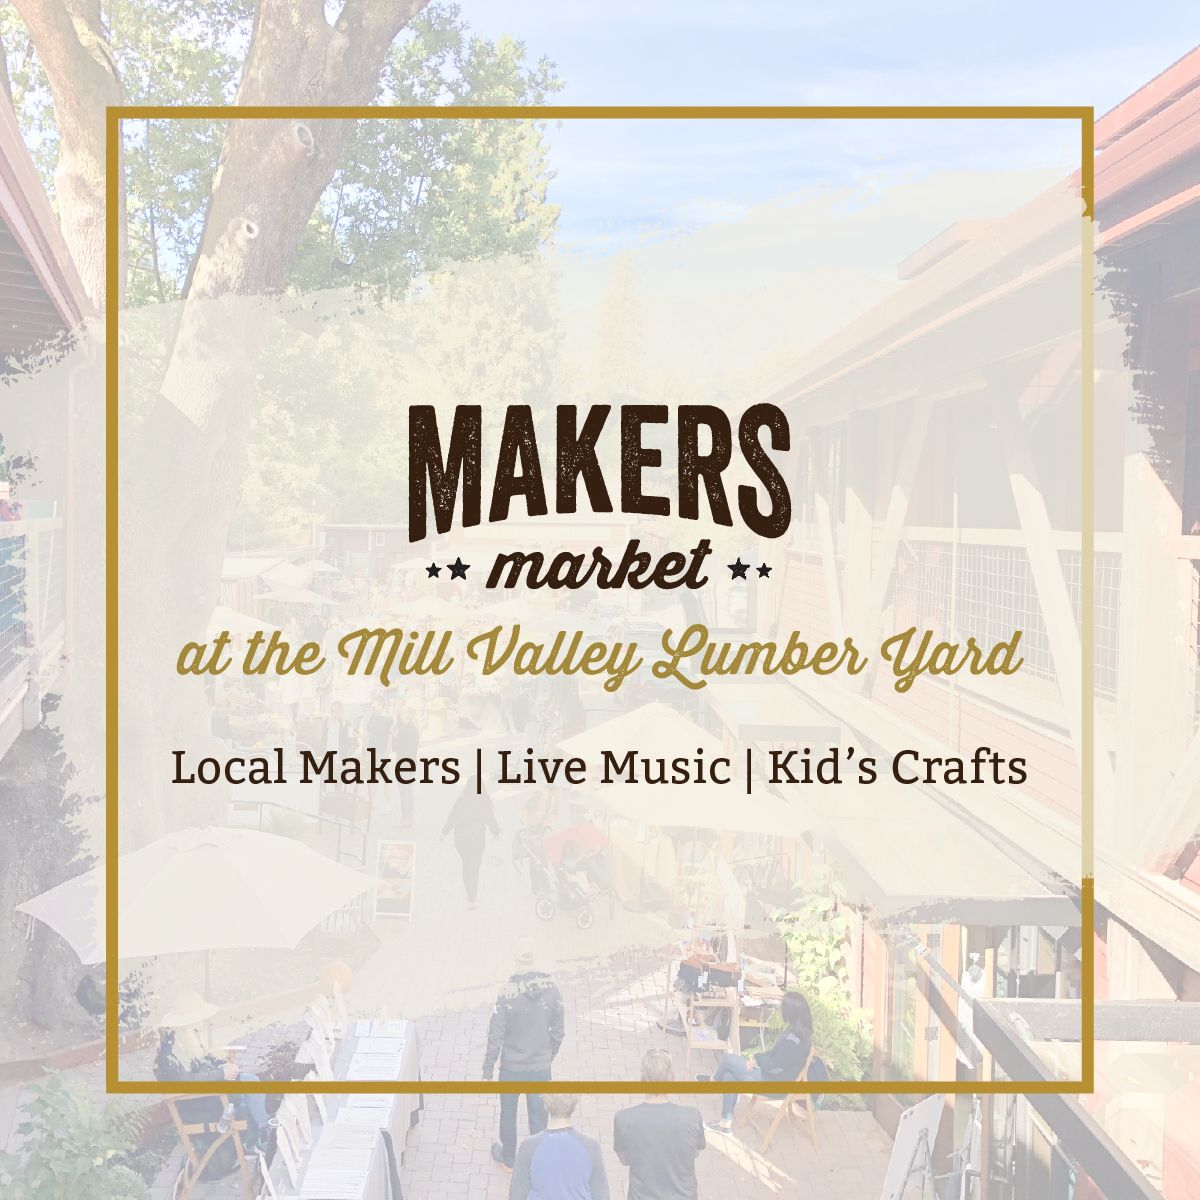 Makers Market at the Lumber Yard - An Open Air Market